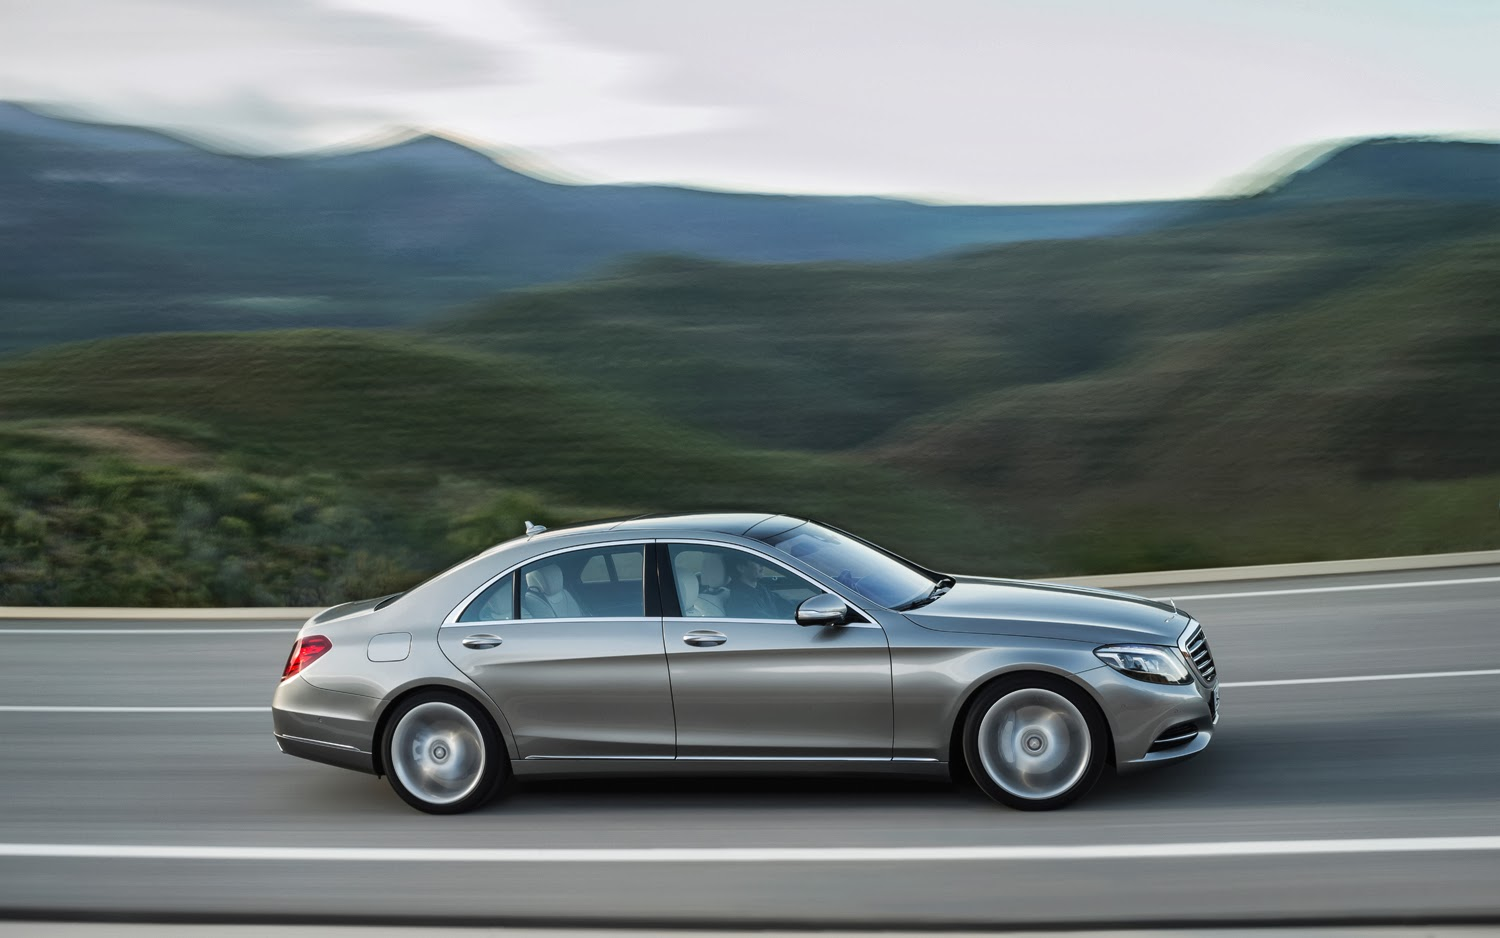 2014 mercedes benz s class review price and design for New mercedes benz s class 2014